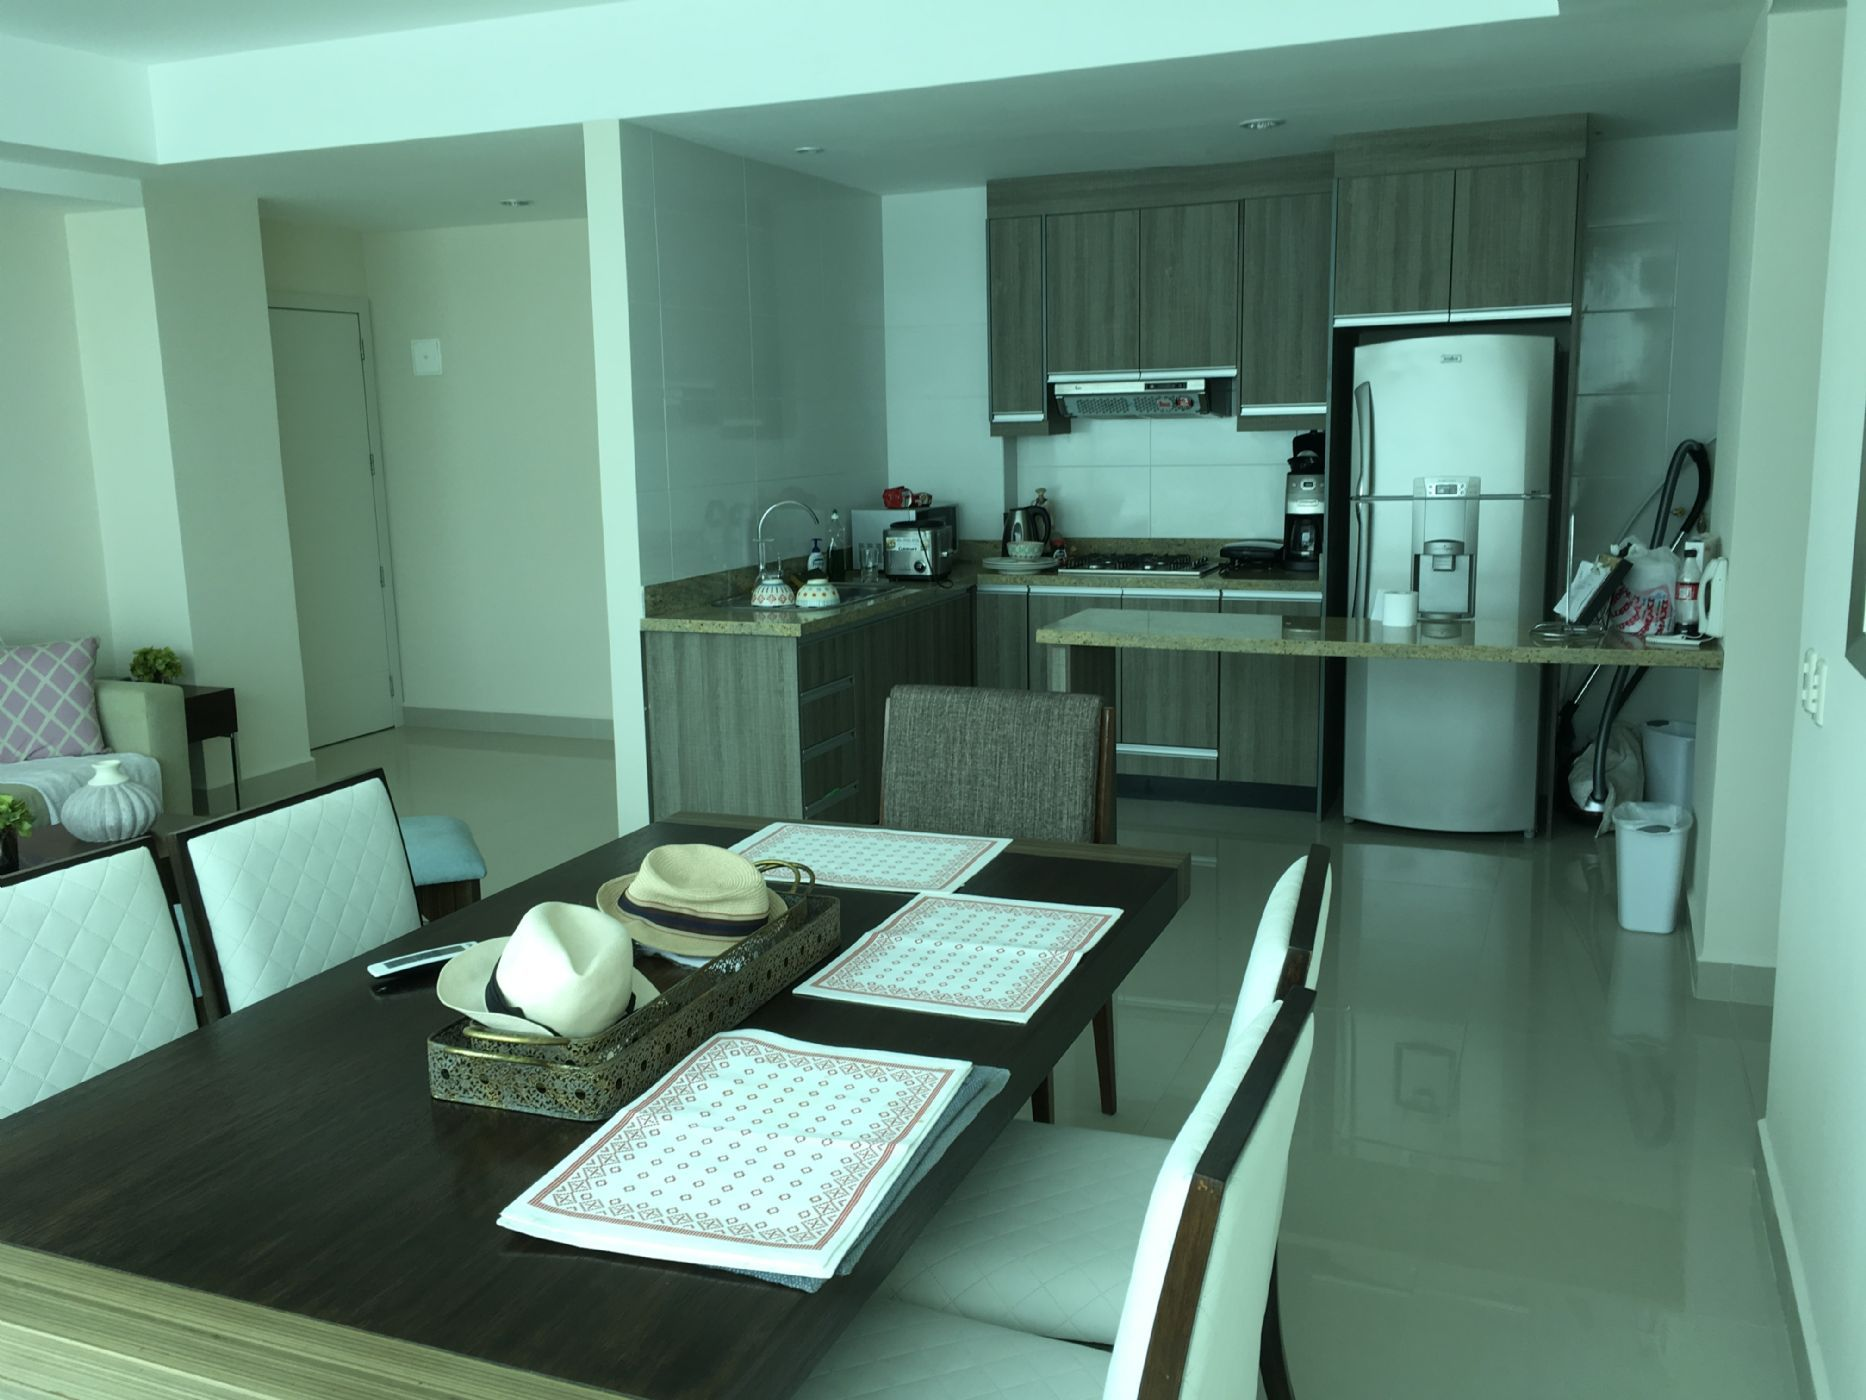 6-Dining-Table-View-Toward-Kitchen